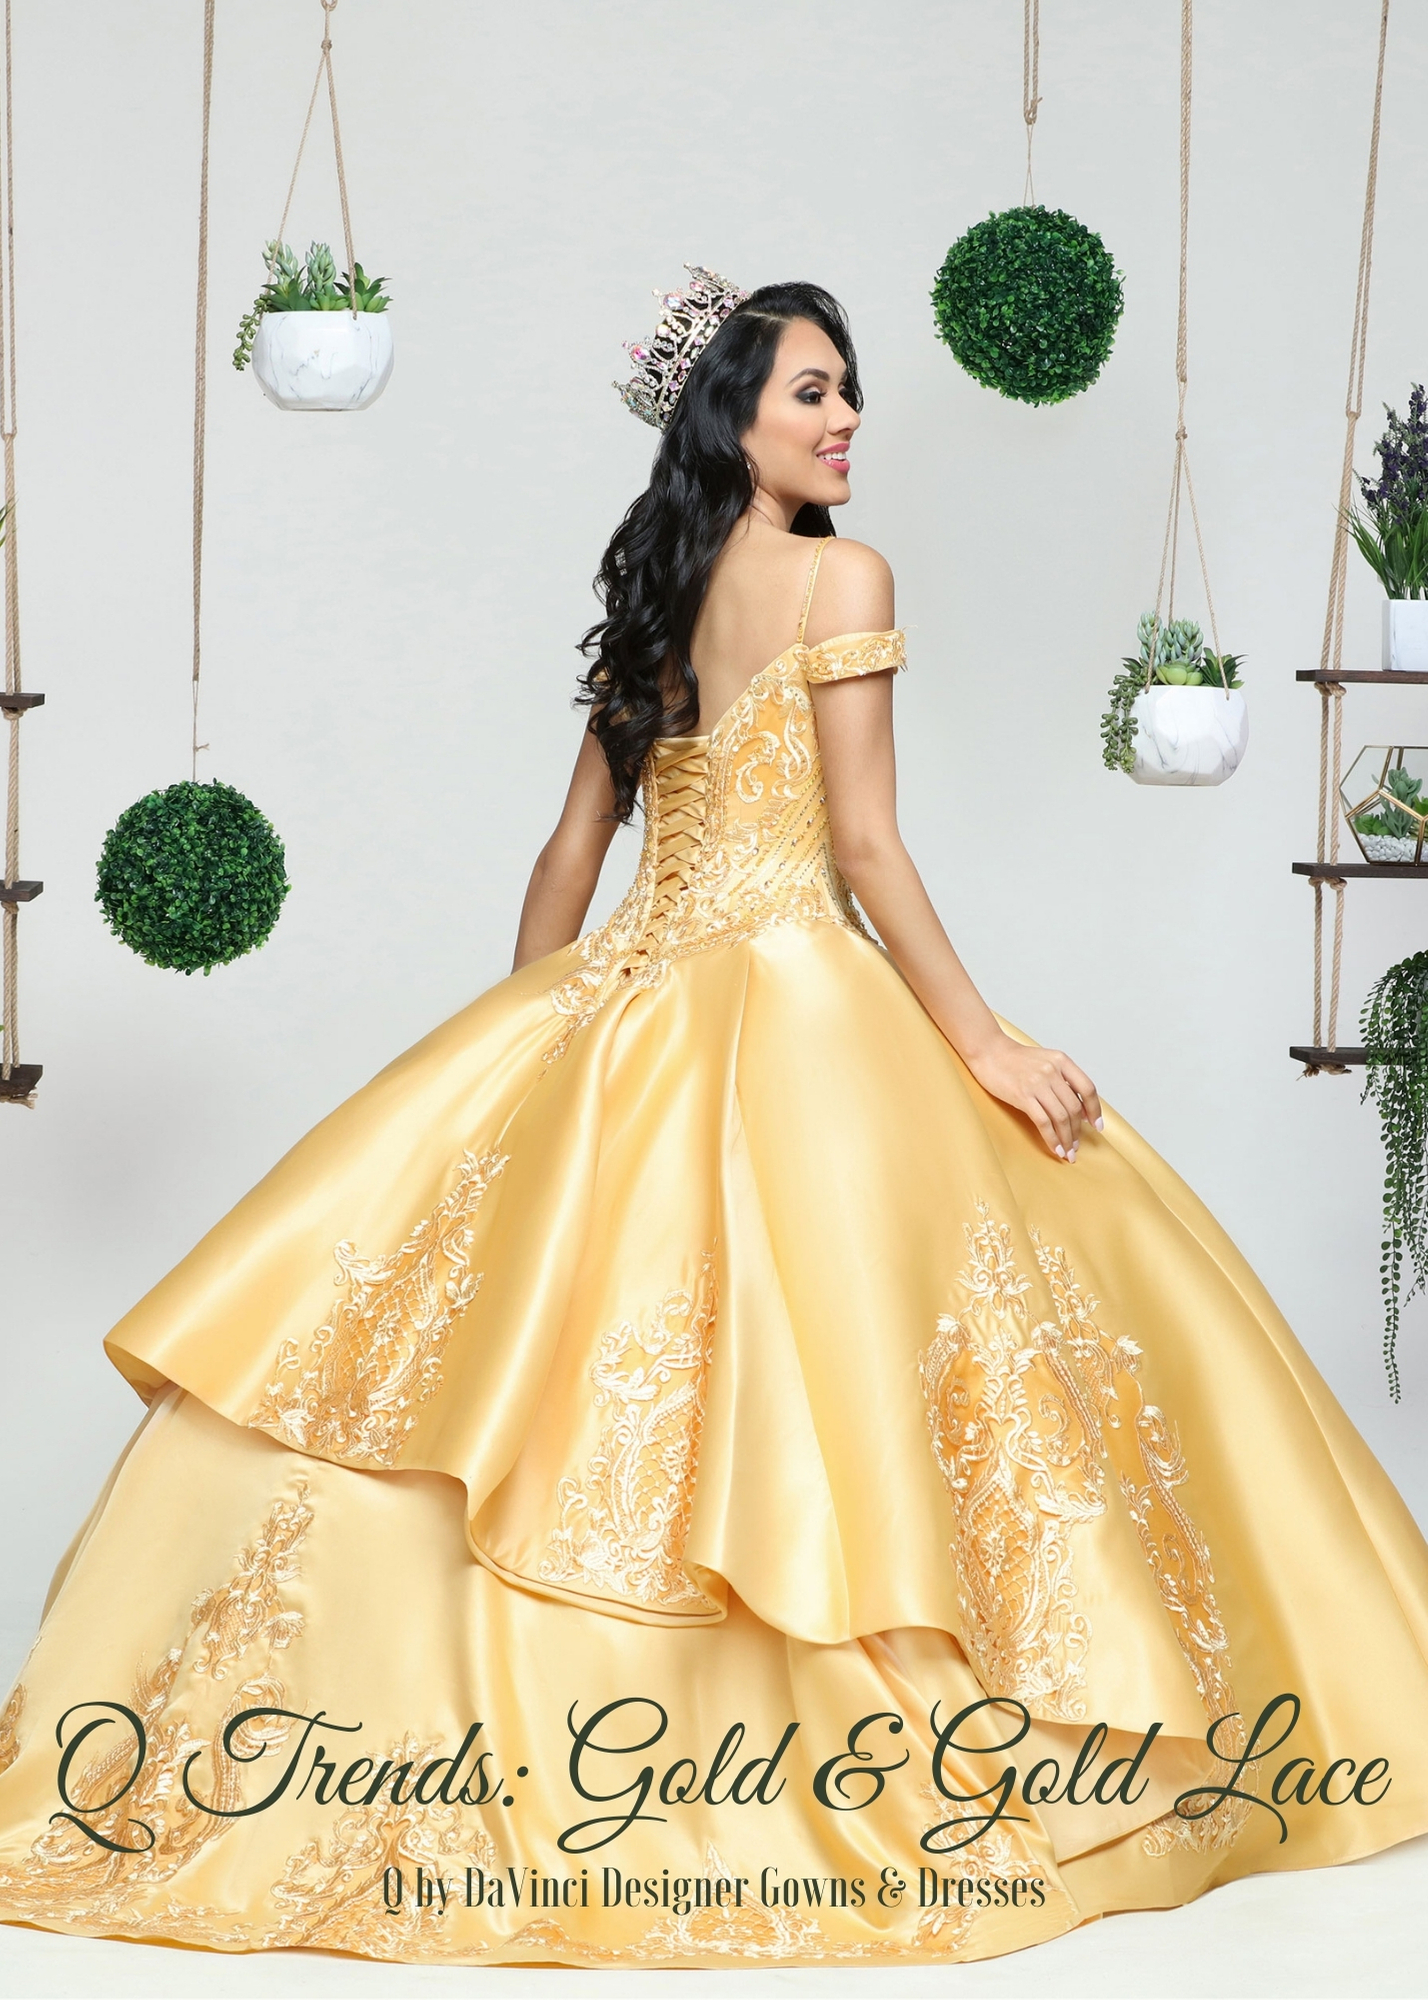 Quinceanera Dress Color Trends: Gold & Gold Lace